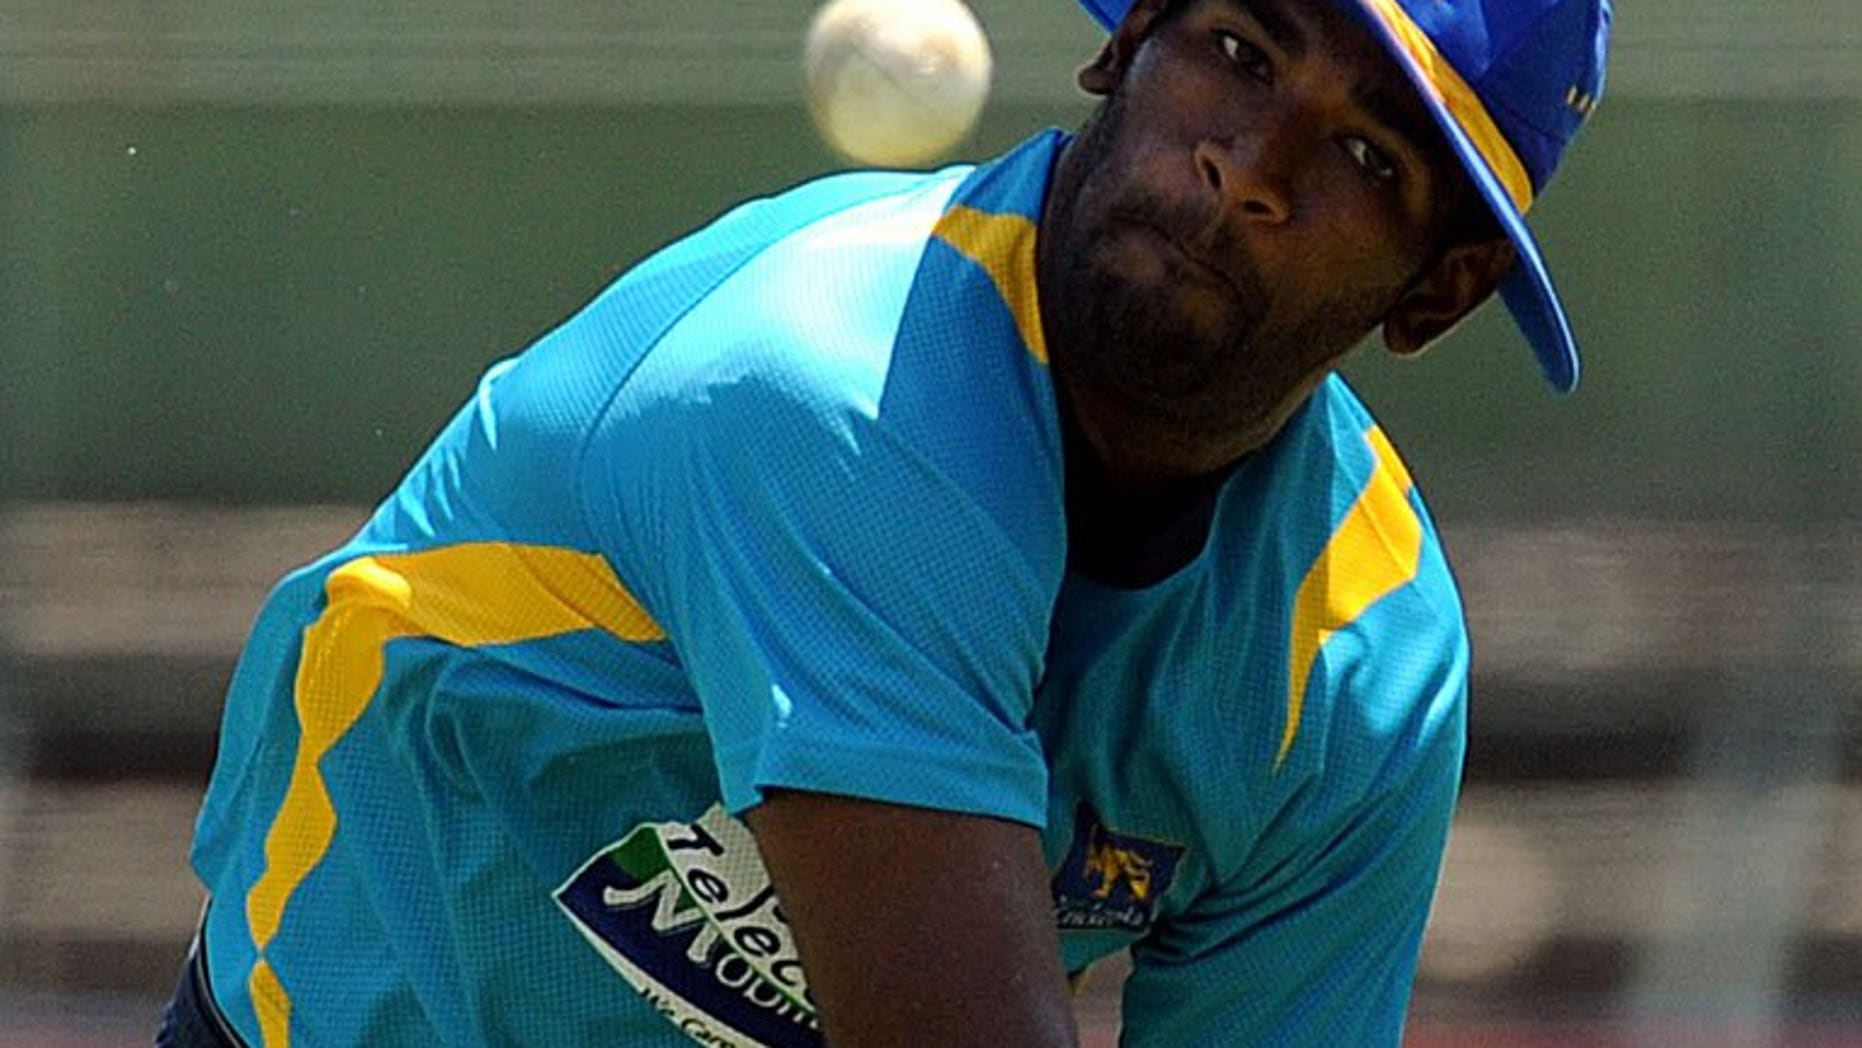 Sri Lankan cricketer Ramith Rambukwella throws a ball during a practice session in Pallekele, on March 30, 2013. Sri Lankan cricket chiefs handed down a fine of nearly $2,000 to Rambukwella after the batsman tried to force open a cabin door of a British Airways flight at 35,000 feet (10,600 metres).